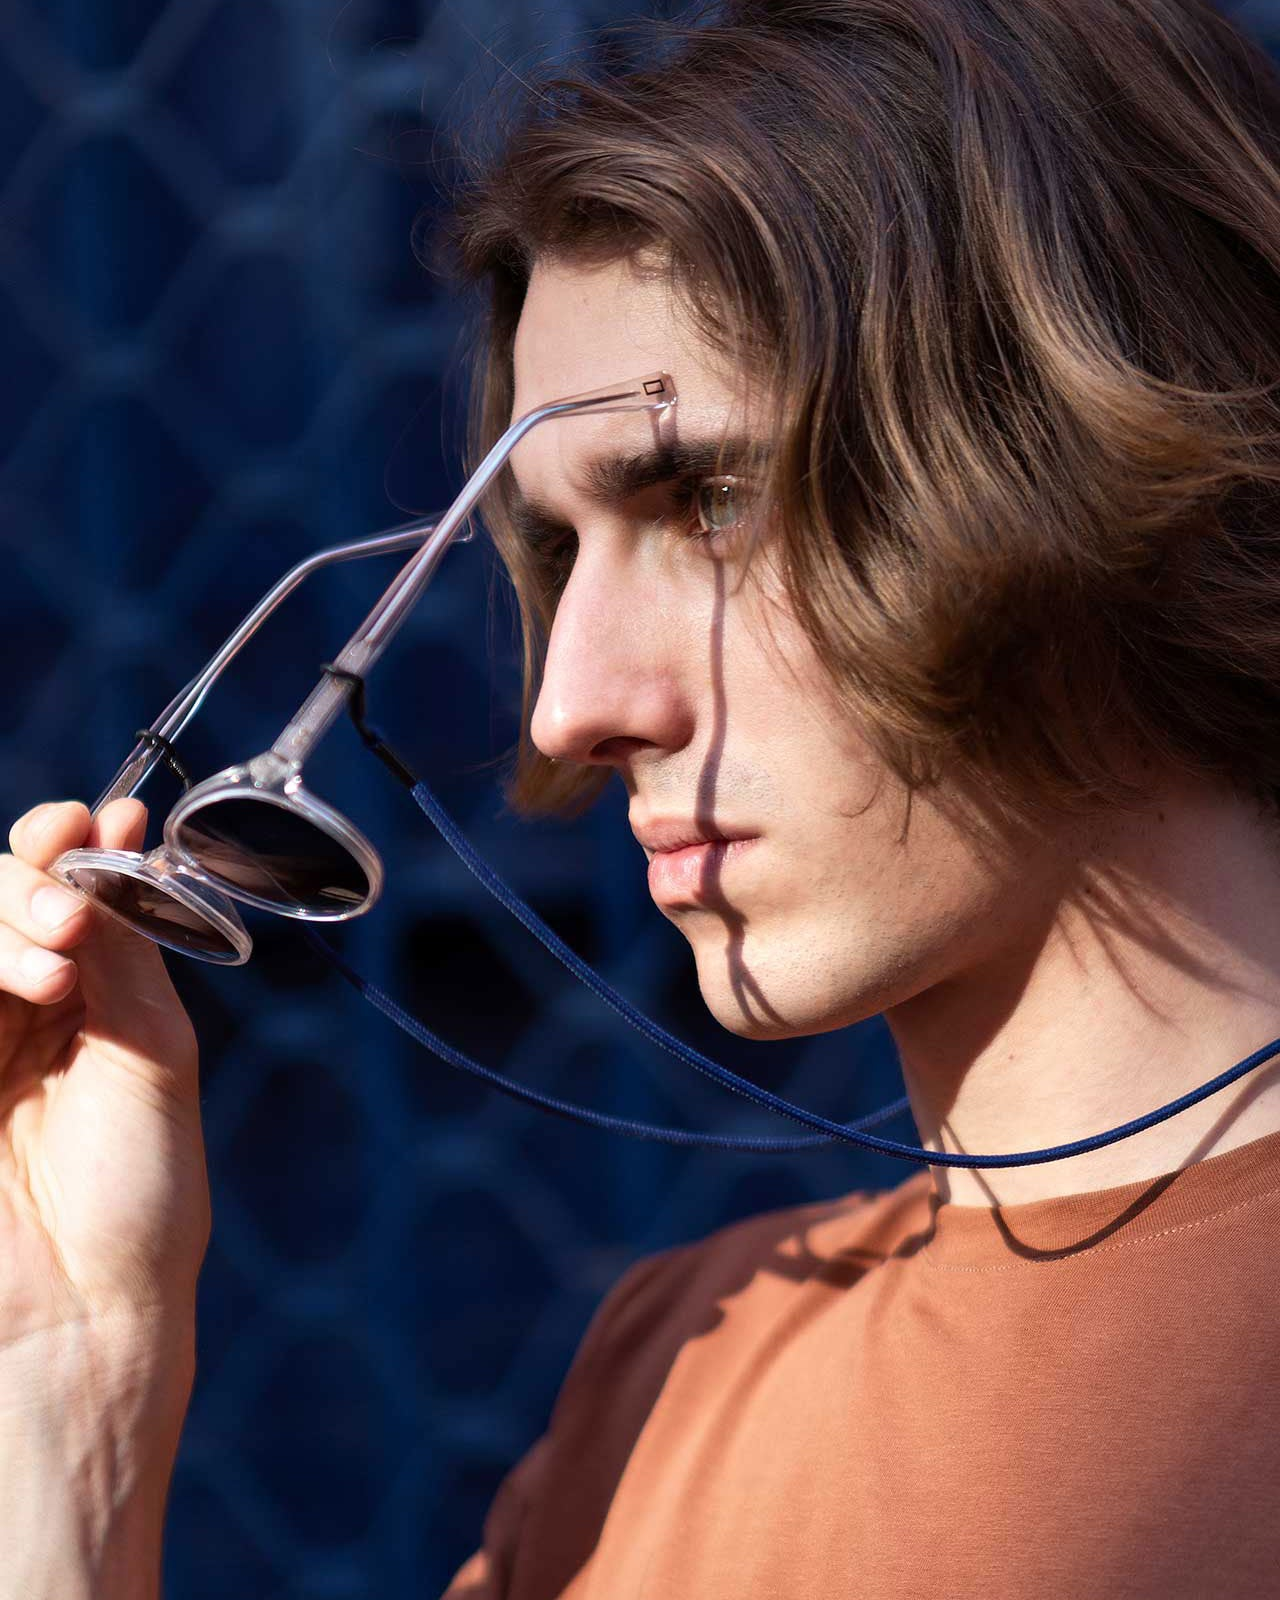 A model takes off clear sunglasses with KNOK Glasses Chain in Navy Blue attached